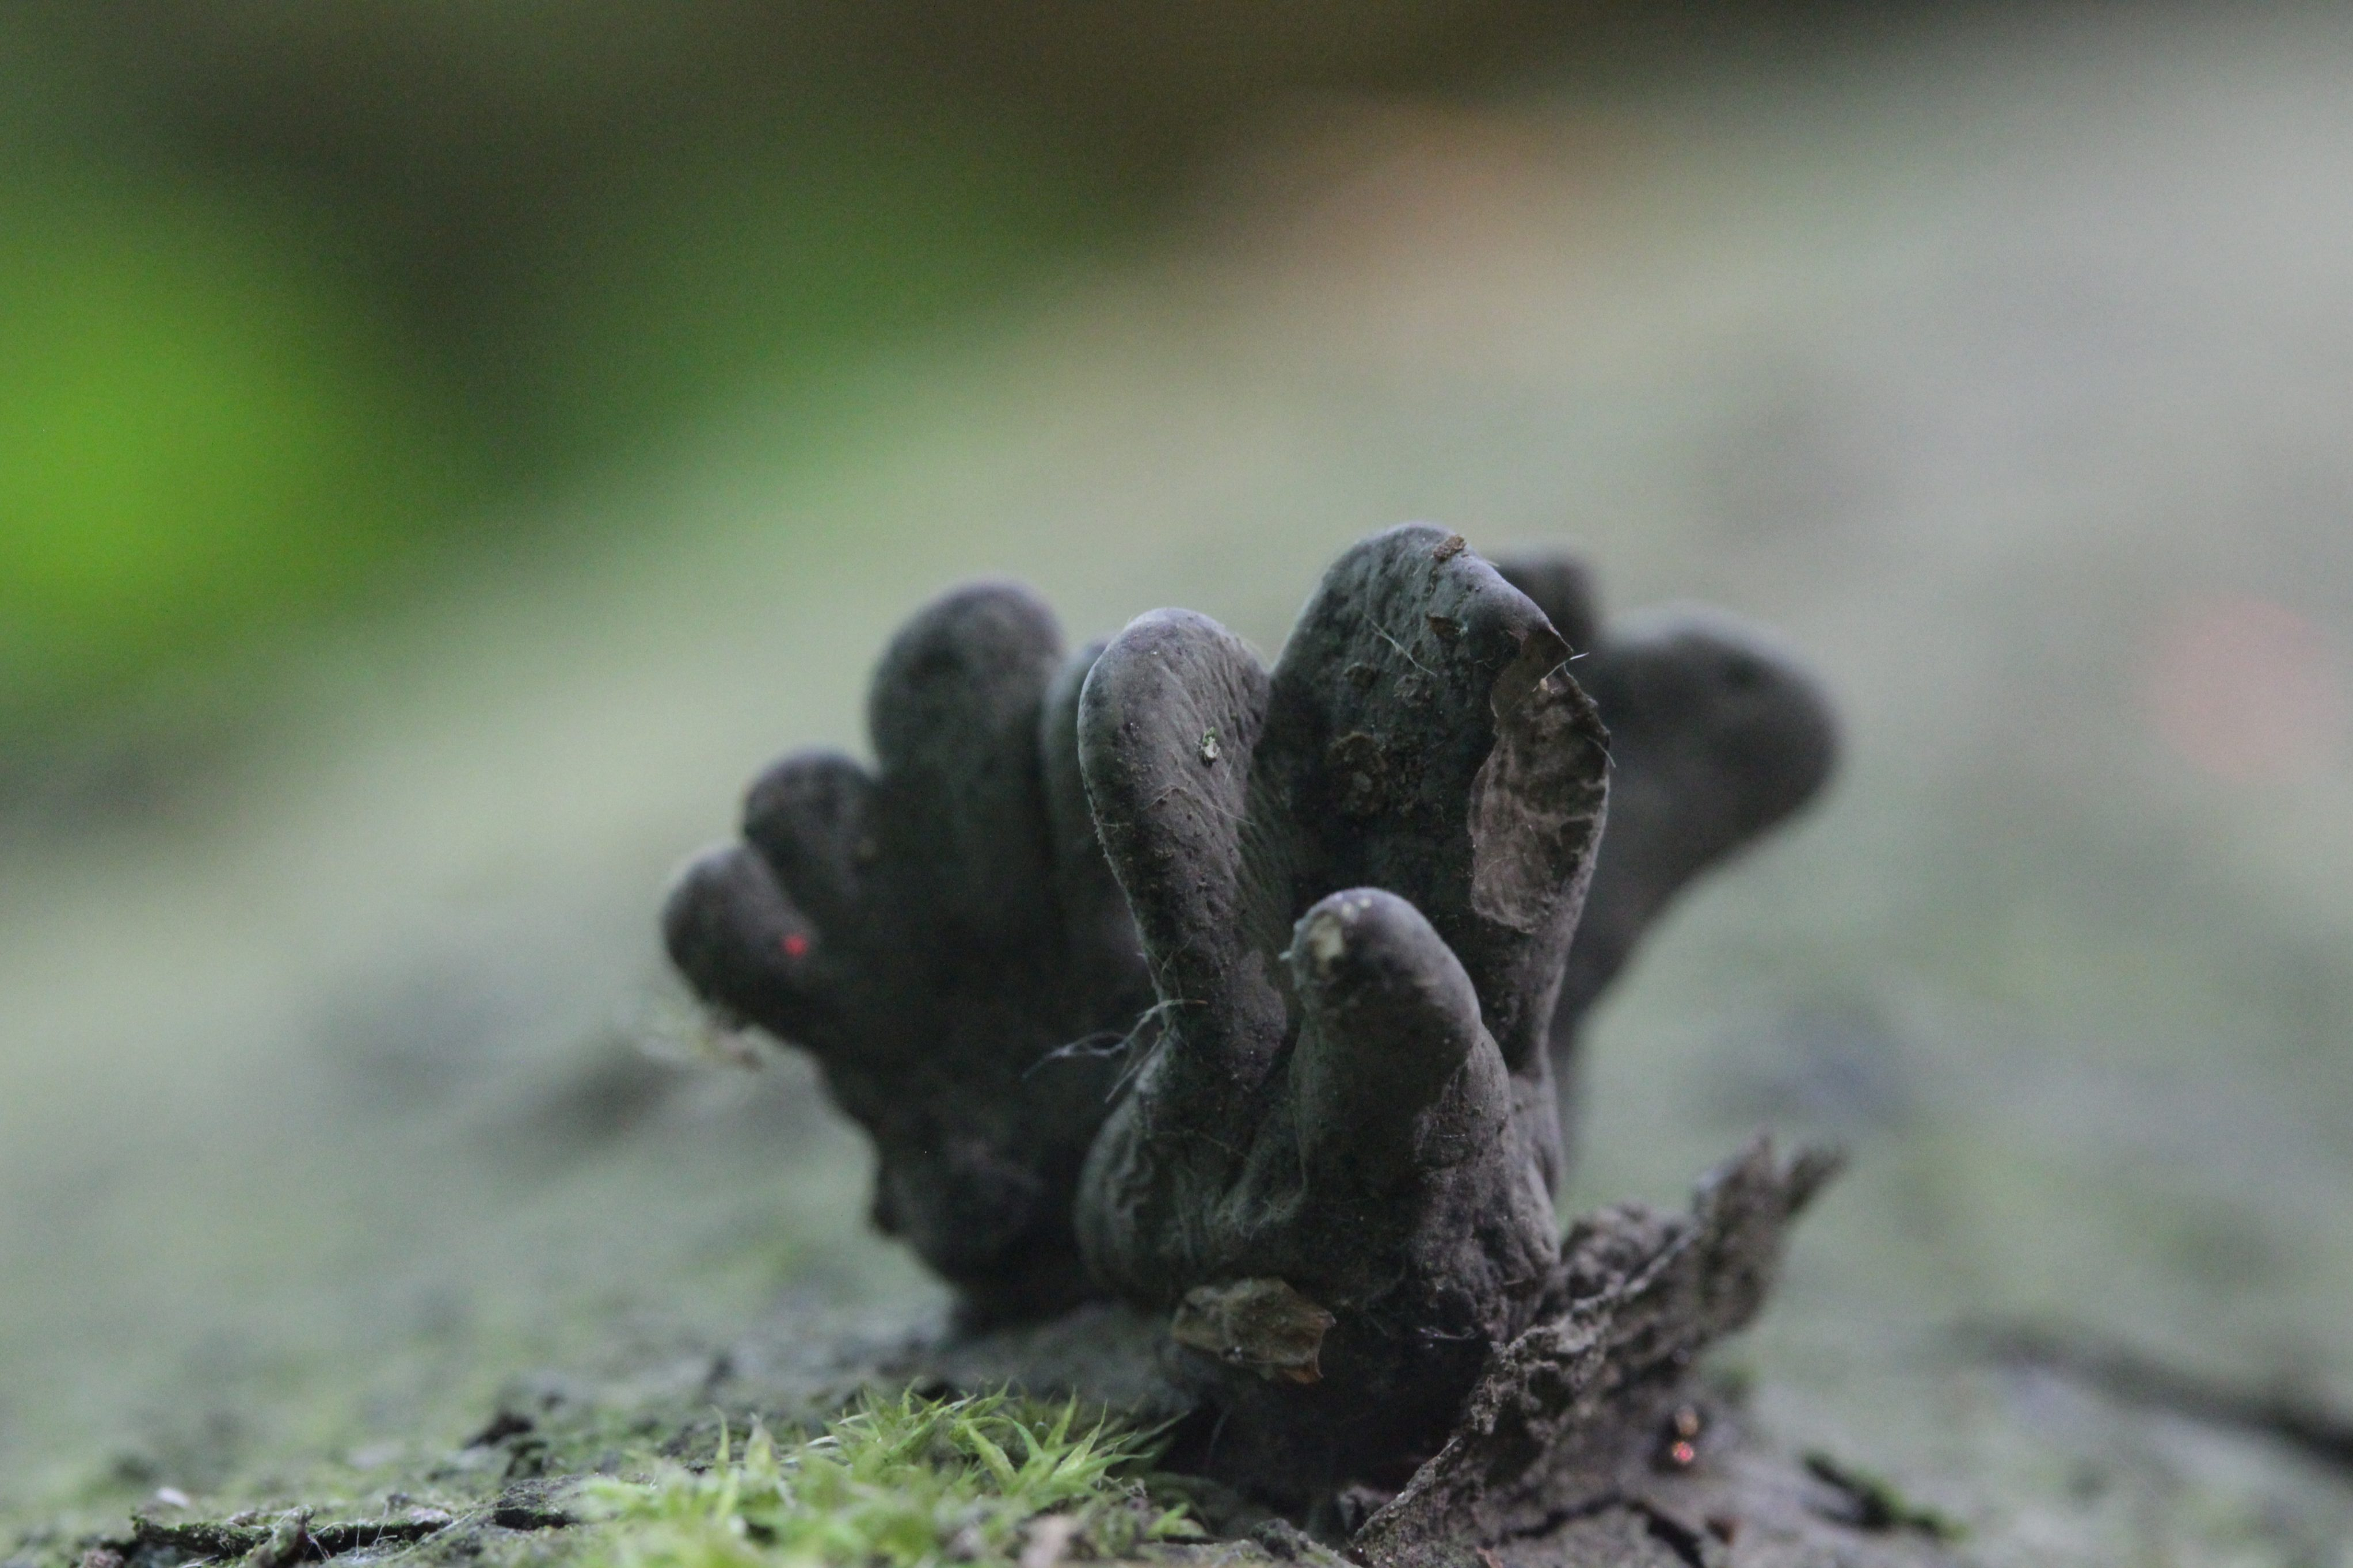 A dark-coloured fungus called Xylaria polymorpha